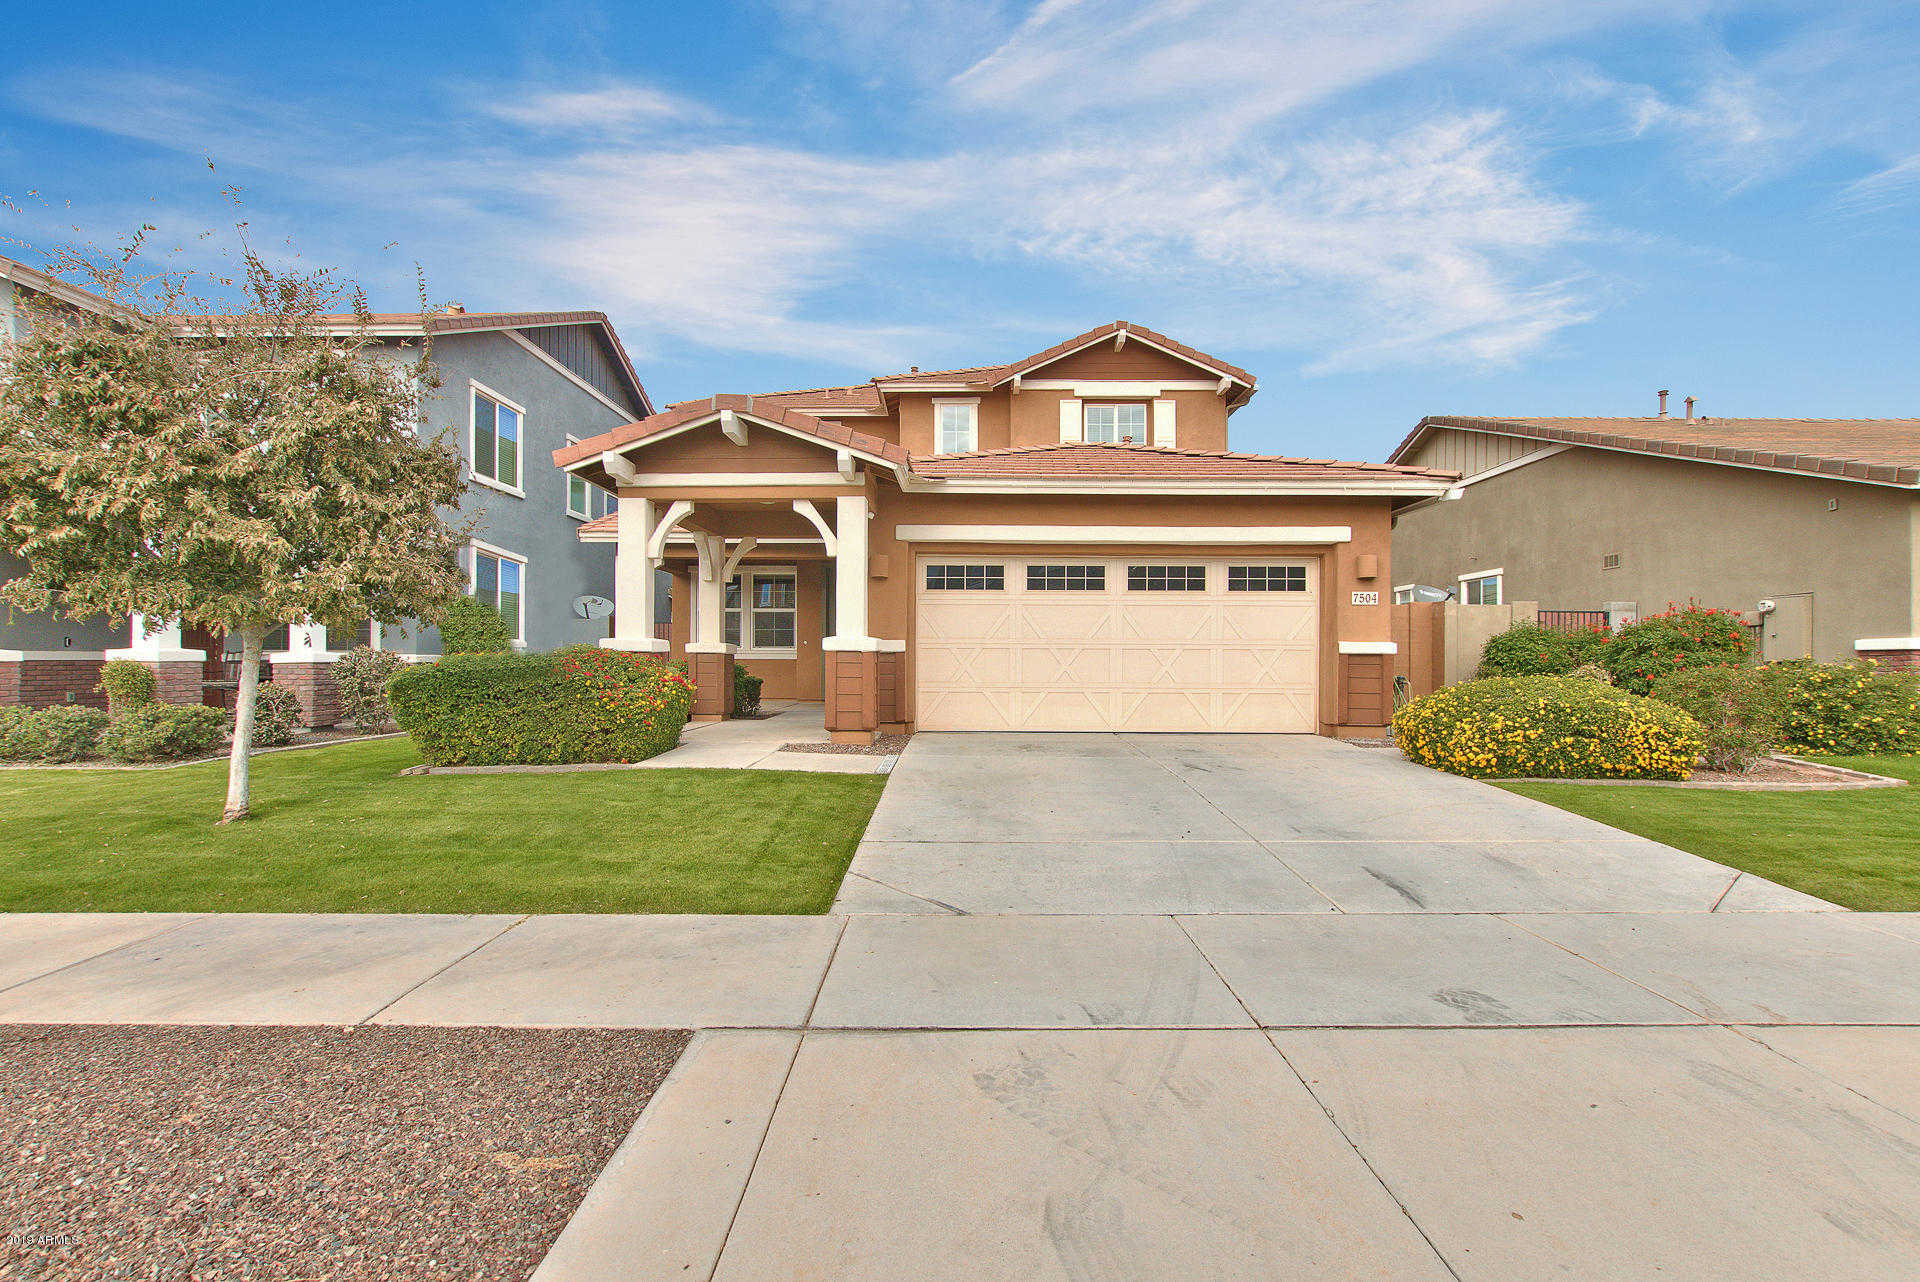 $400,000 - 4Br/4Ba - Home for Sale in Desert Place At Morrison Ranch Phase 1, Mesa